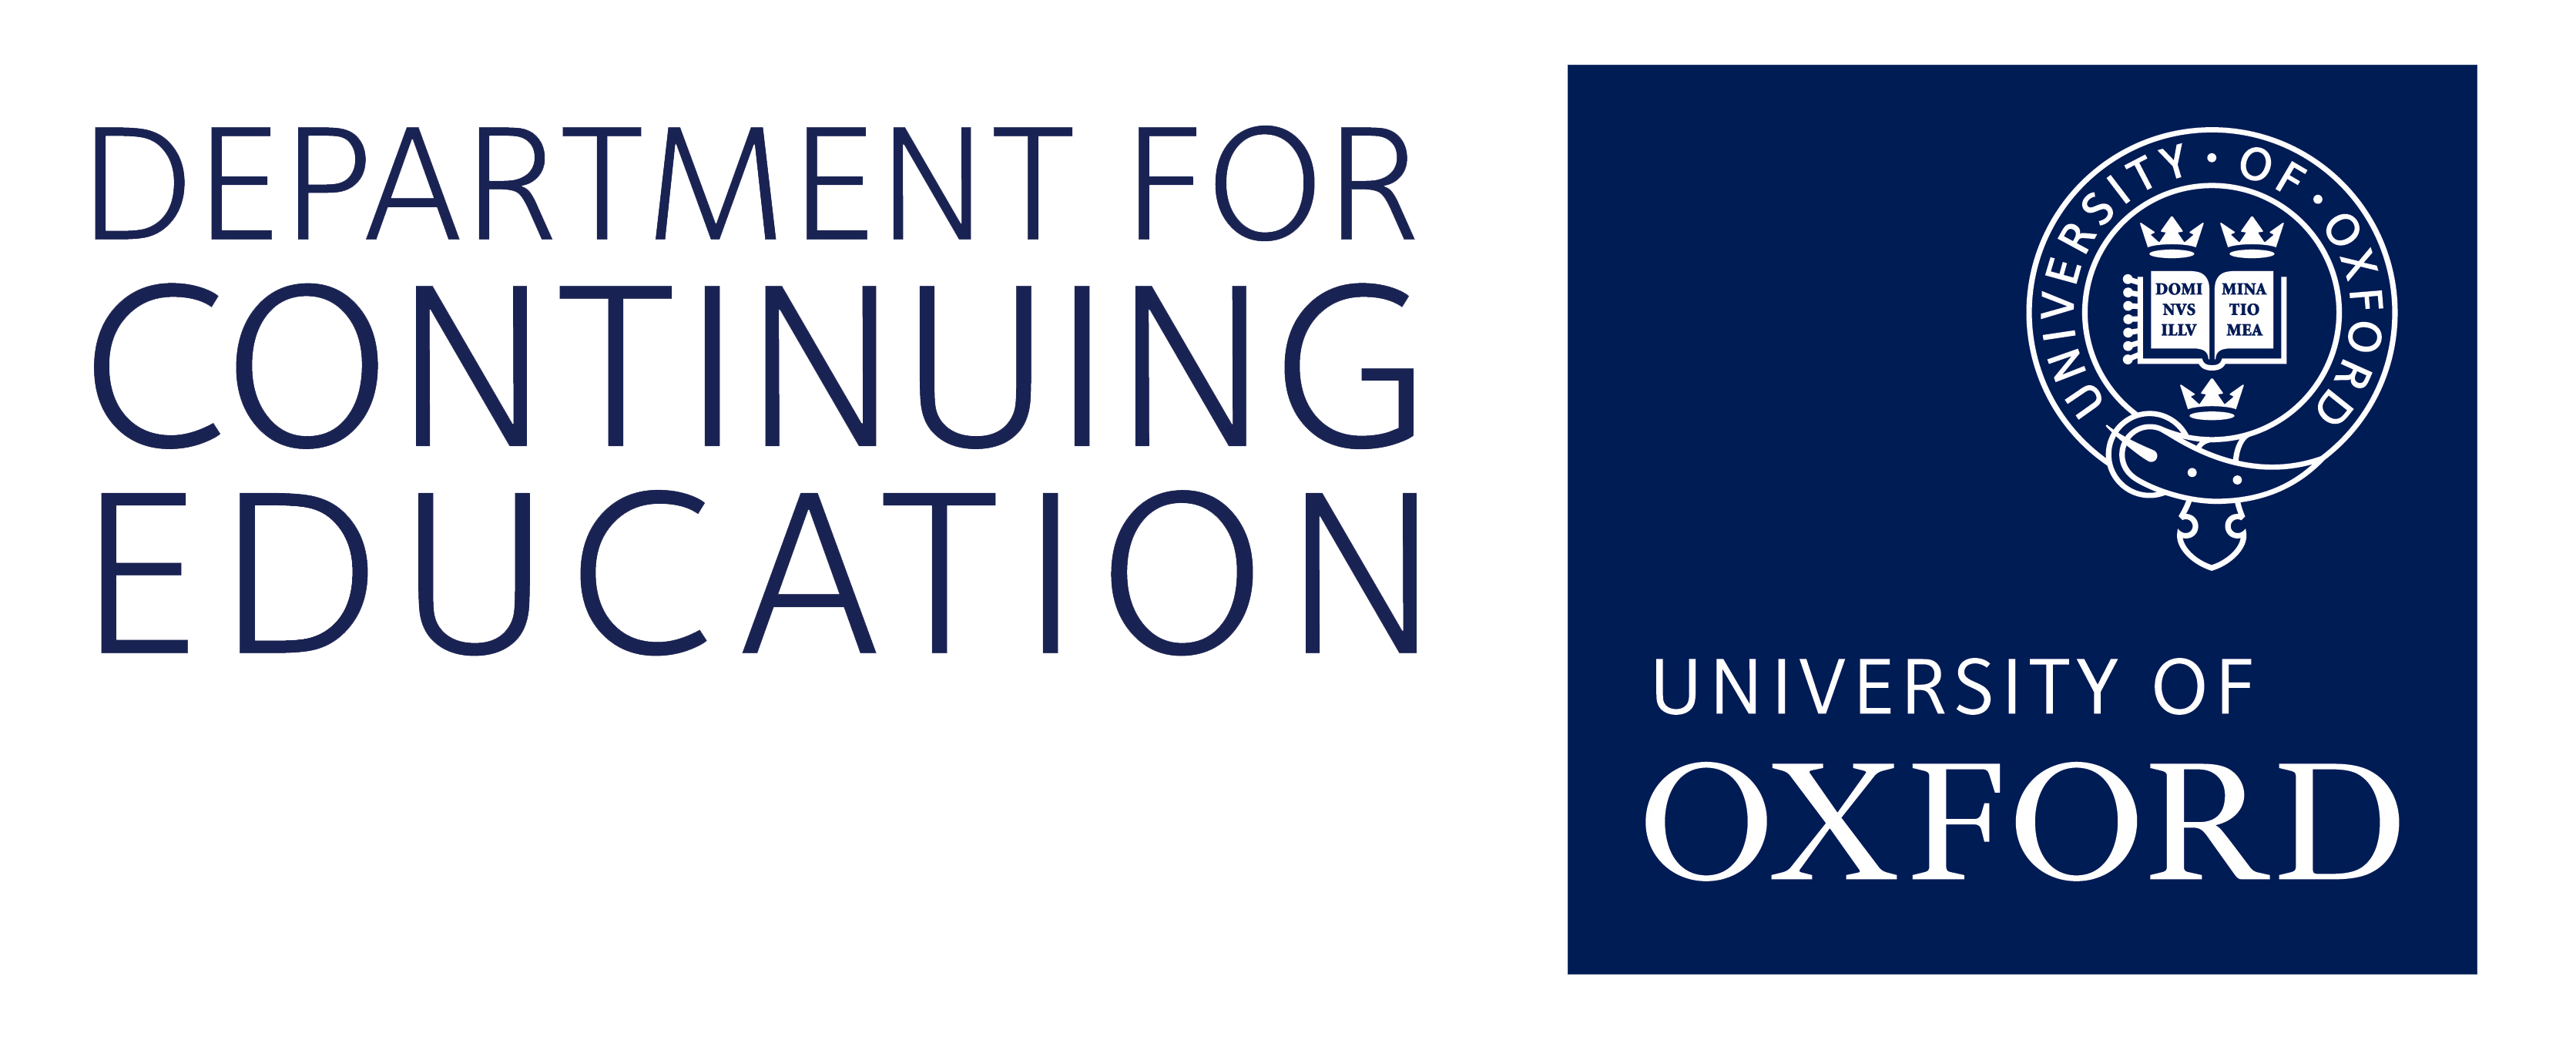 The University of Oxford Sustainable Urban Development Programme